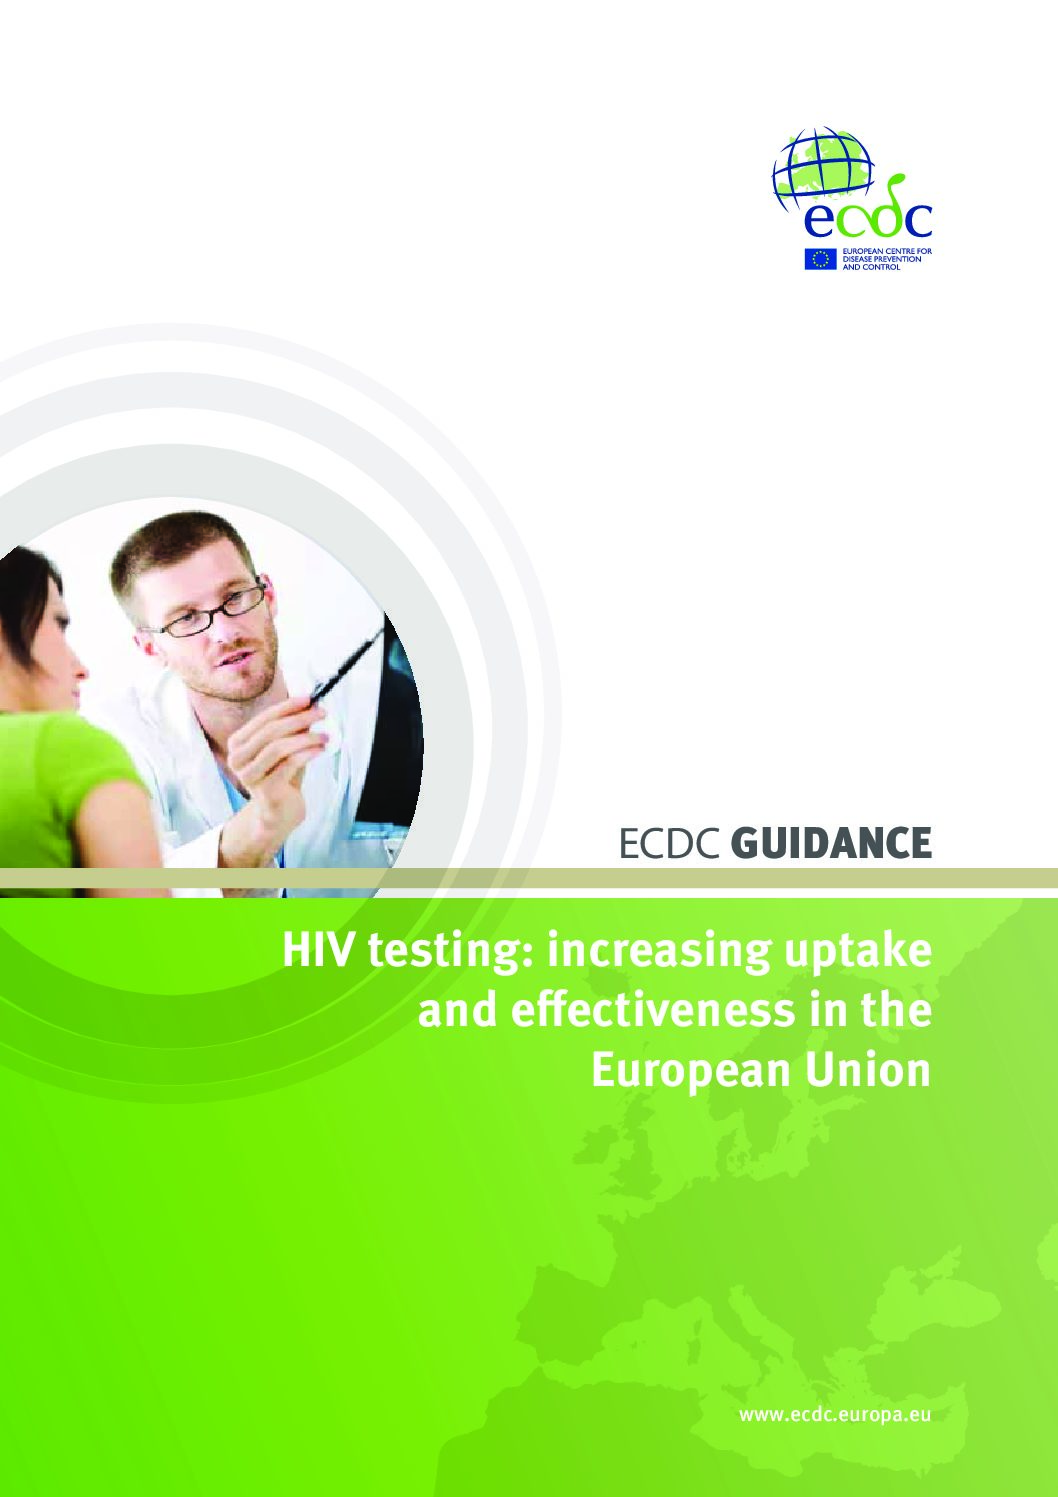 HIV testing increasing uptake and effectiveness in the European Union.